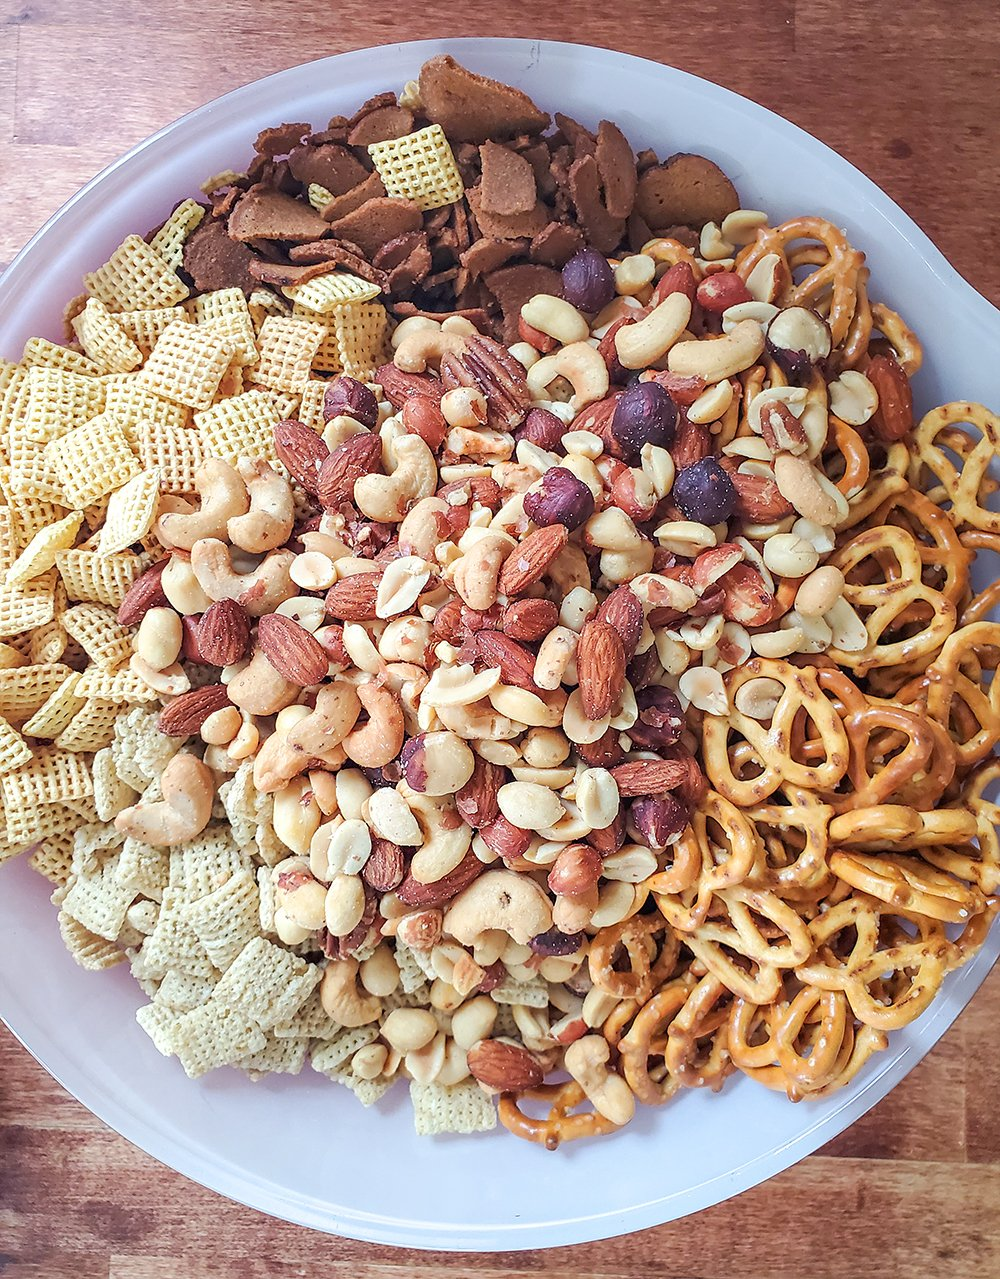 Chex mix ingredients ready to be baked.